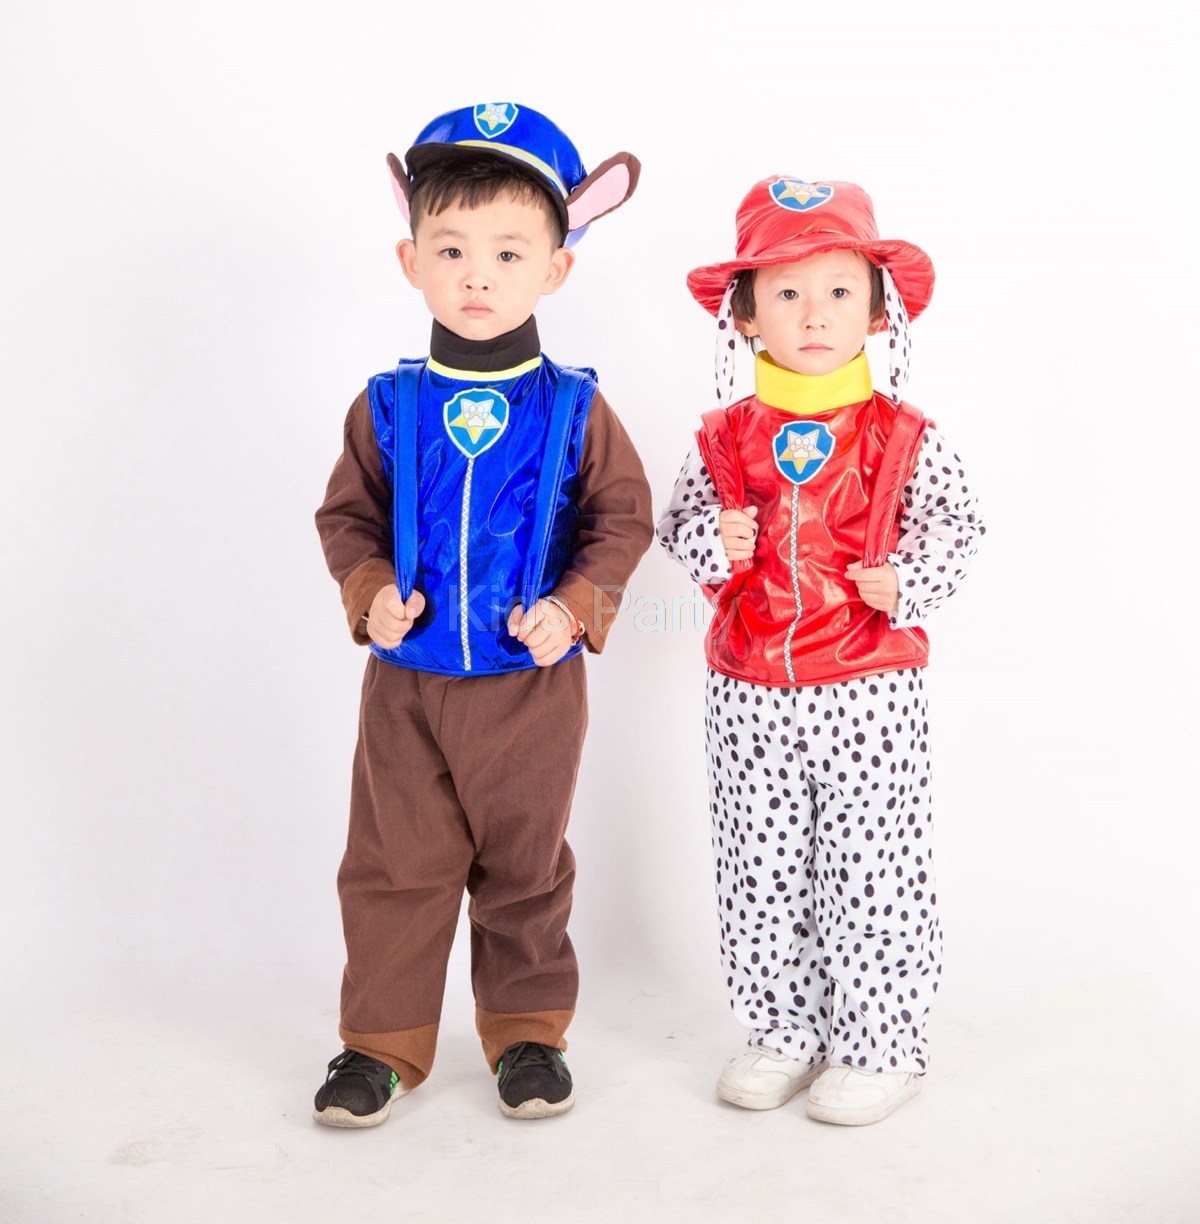 Funy Cosplay Costume 2018 Children Kids Dog Costume Cartoon Mascot Costume Clothes